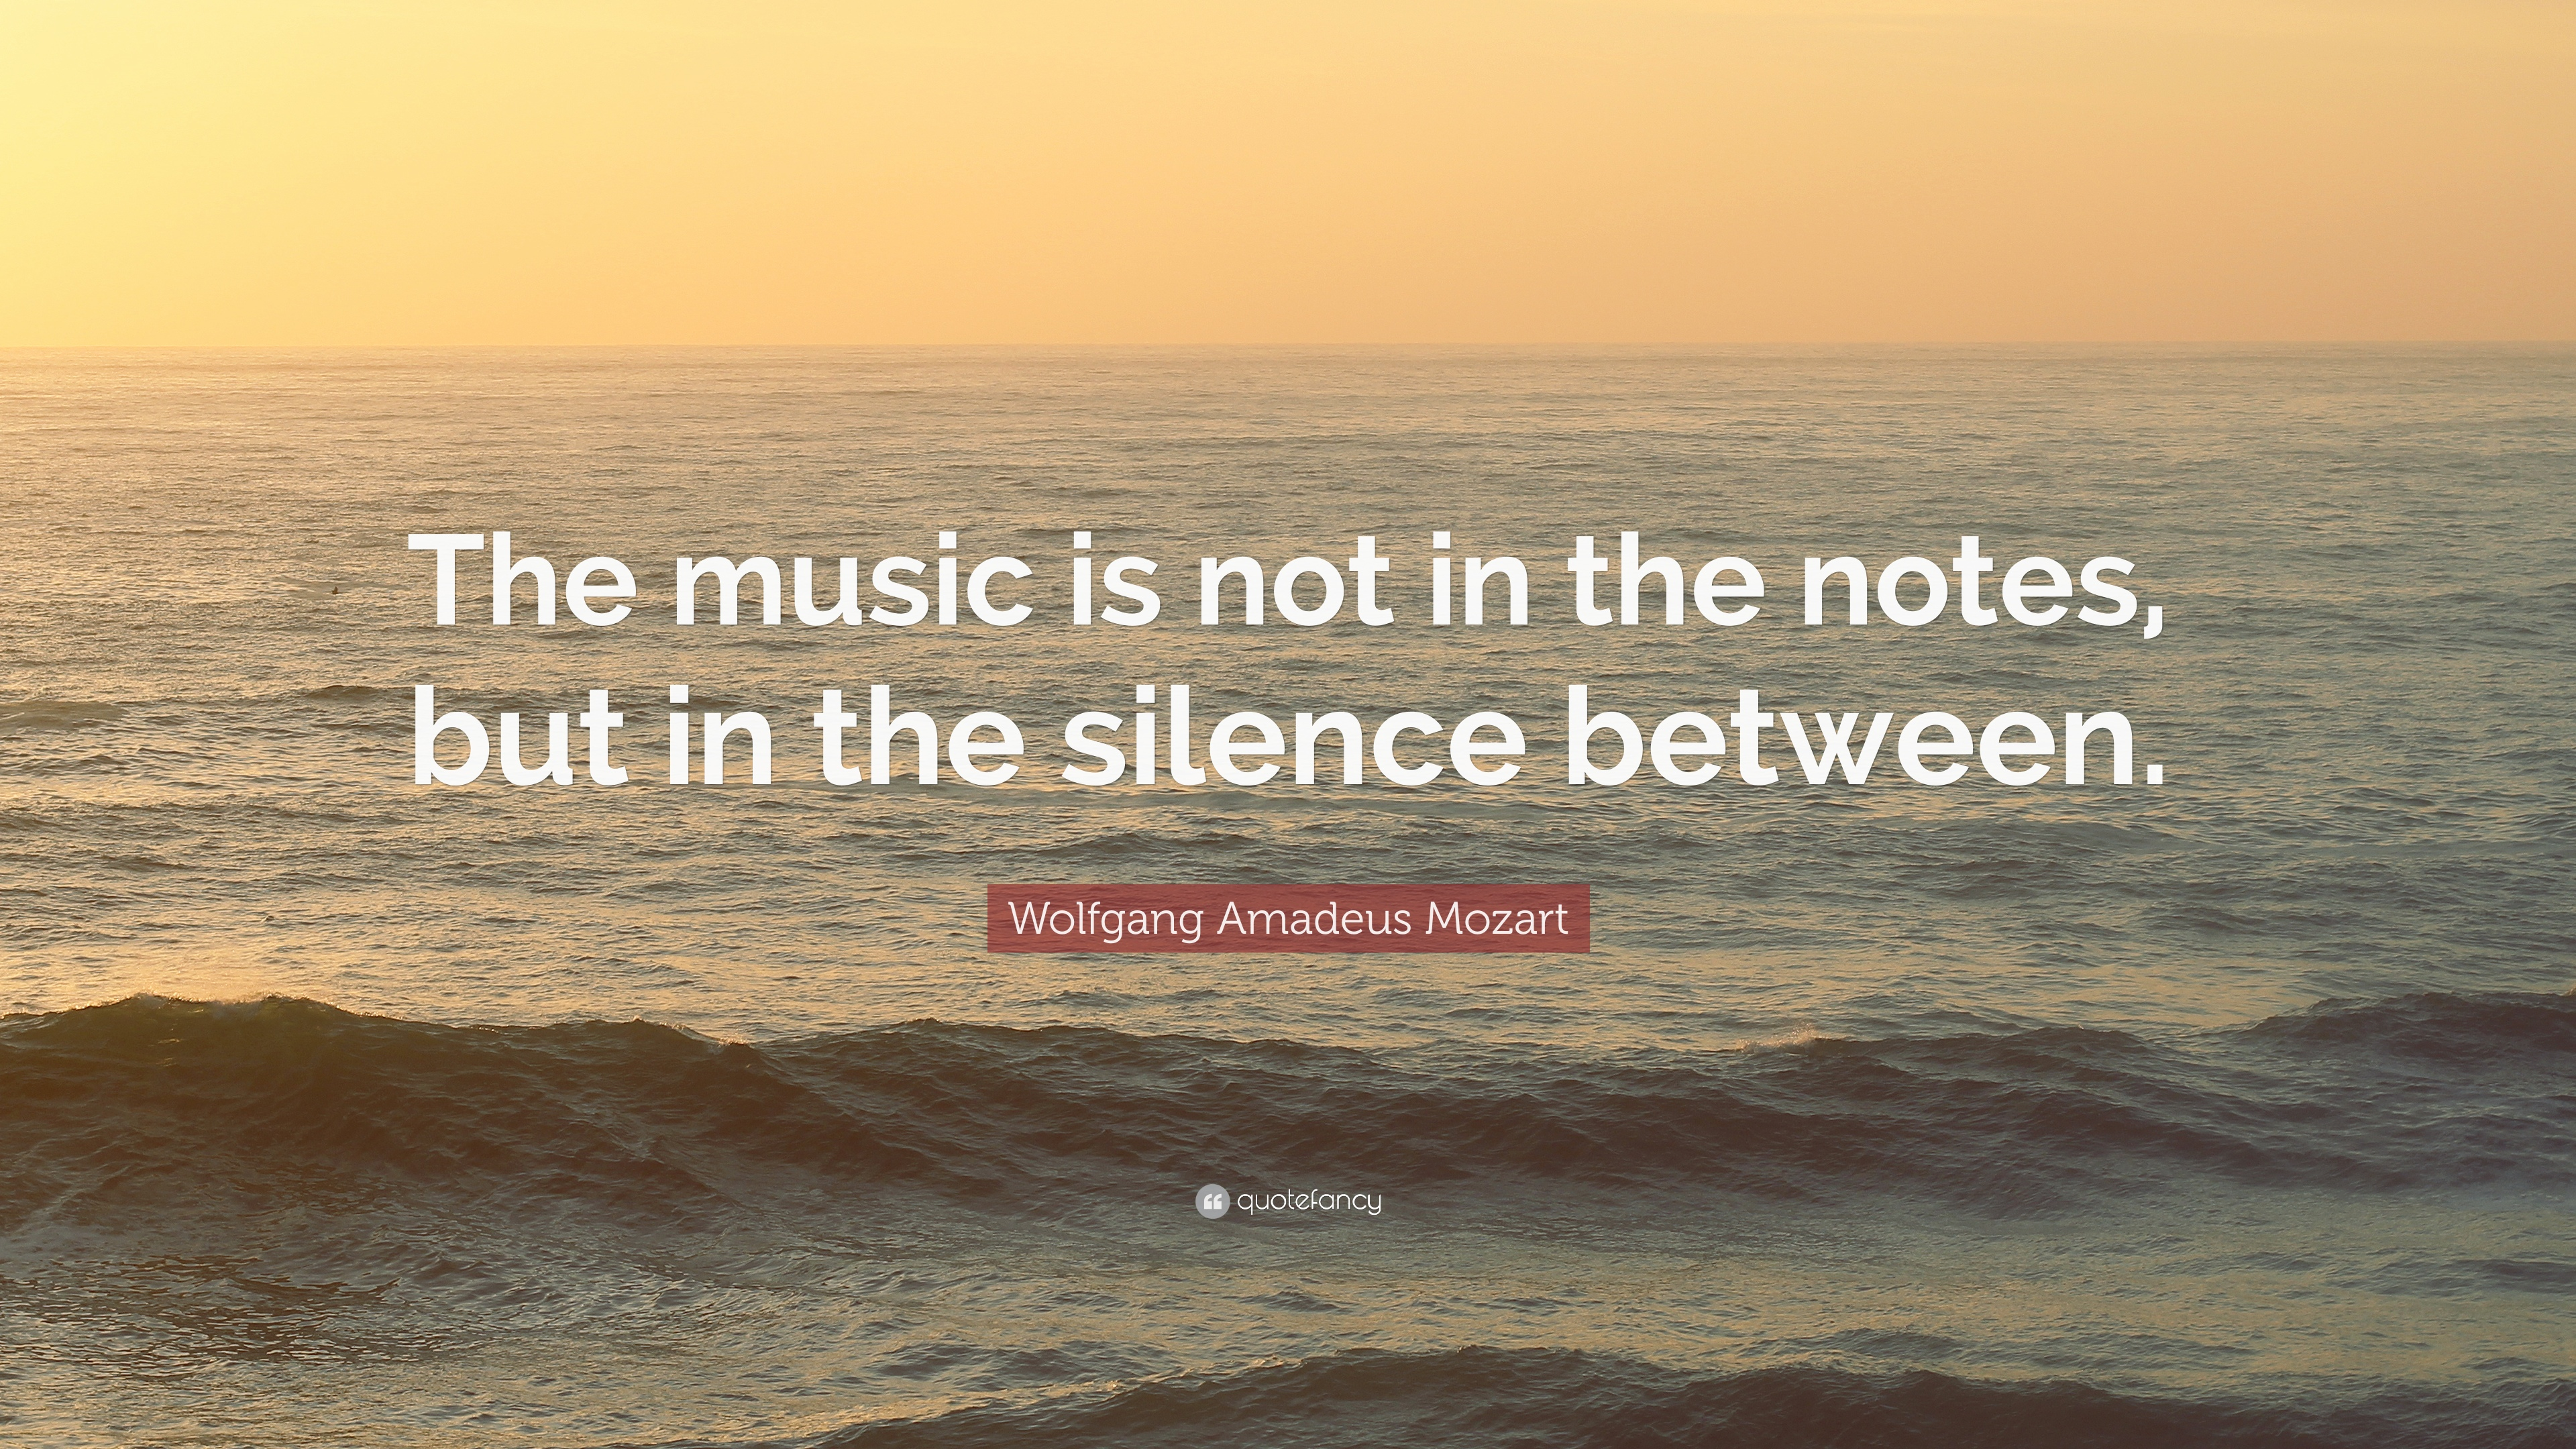 Roald Dahl Quotes Wallpaper Wolfgang Amadeus Mozart Quote The Music Is Not In The